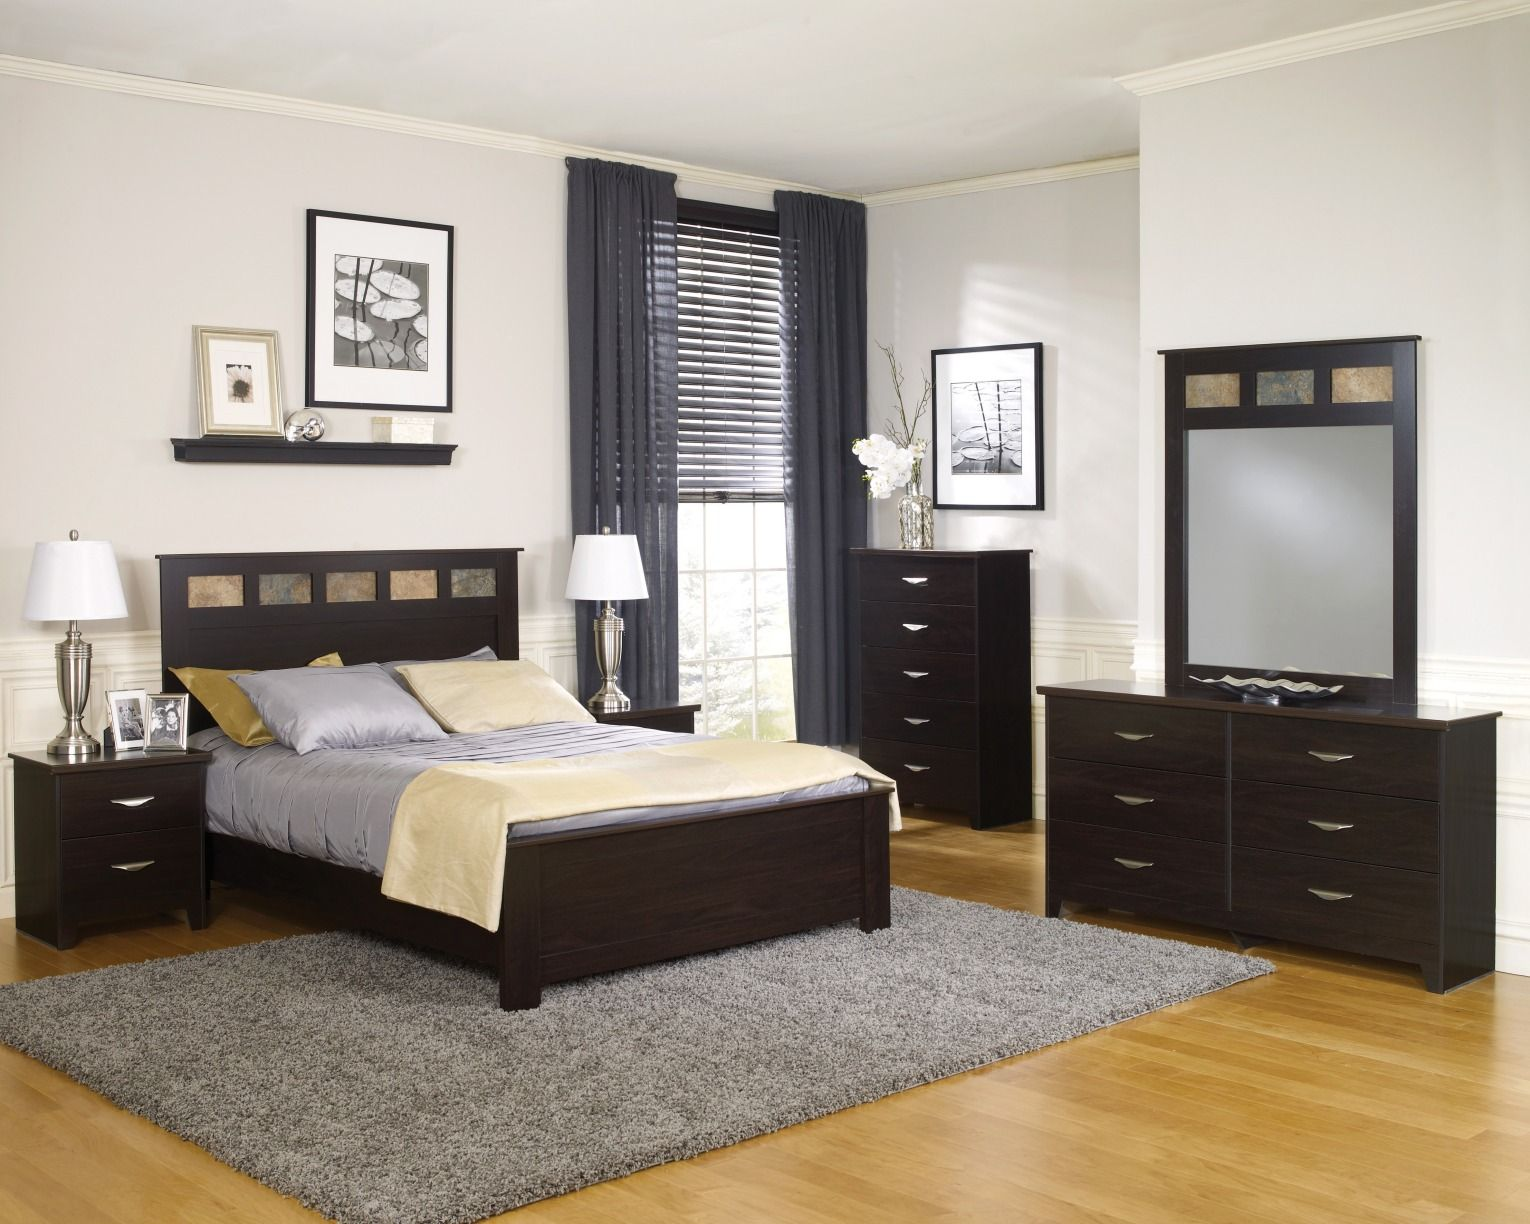 Showcase your style and taste with this trendy Dakota™ Queen Bedroom Suite. Available in a lavish Espresso Finish, this beautiful bedroom set delivers elegant and functional furnishings for your home!